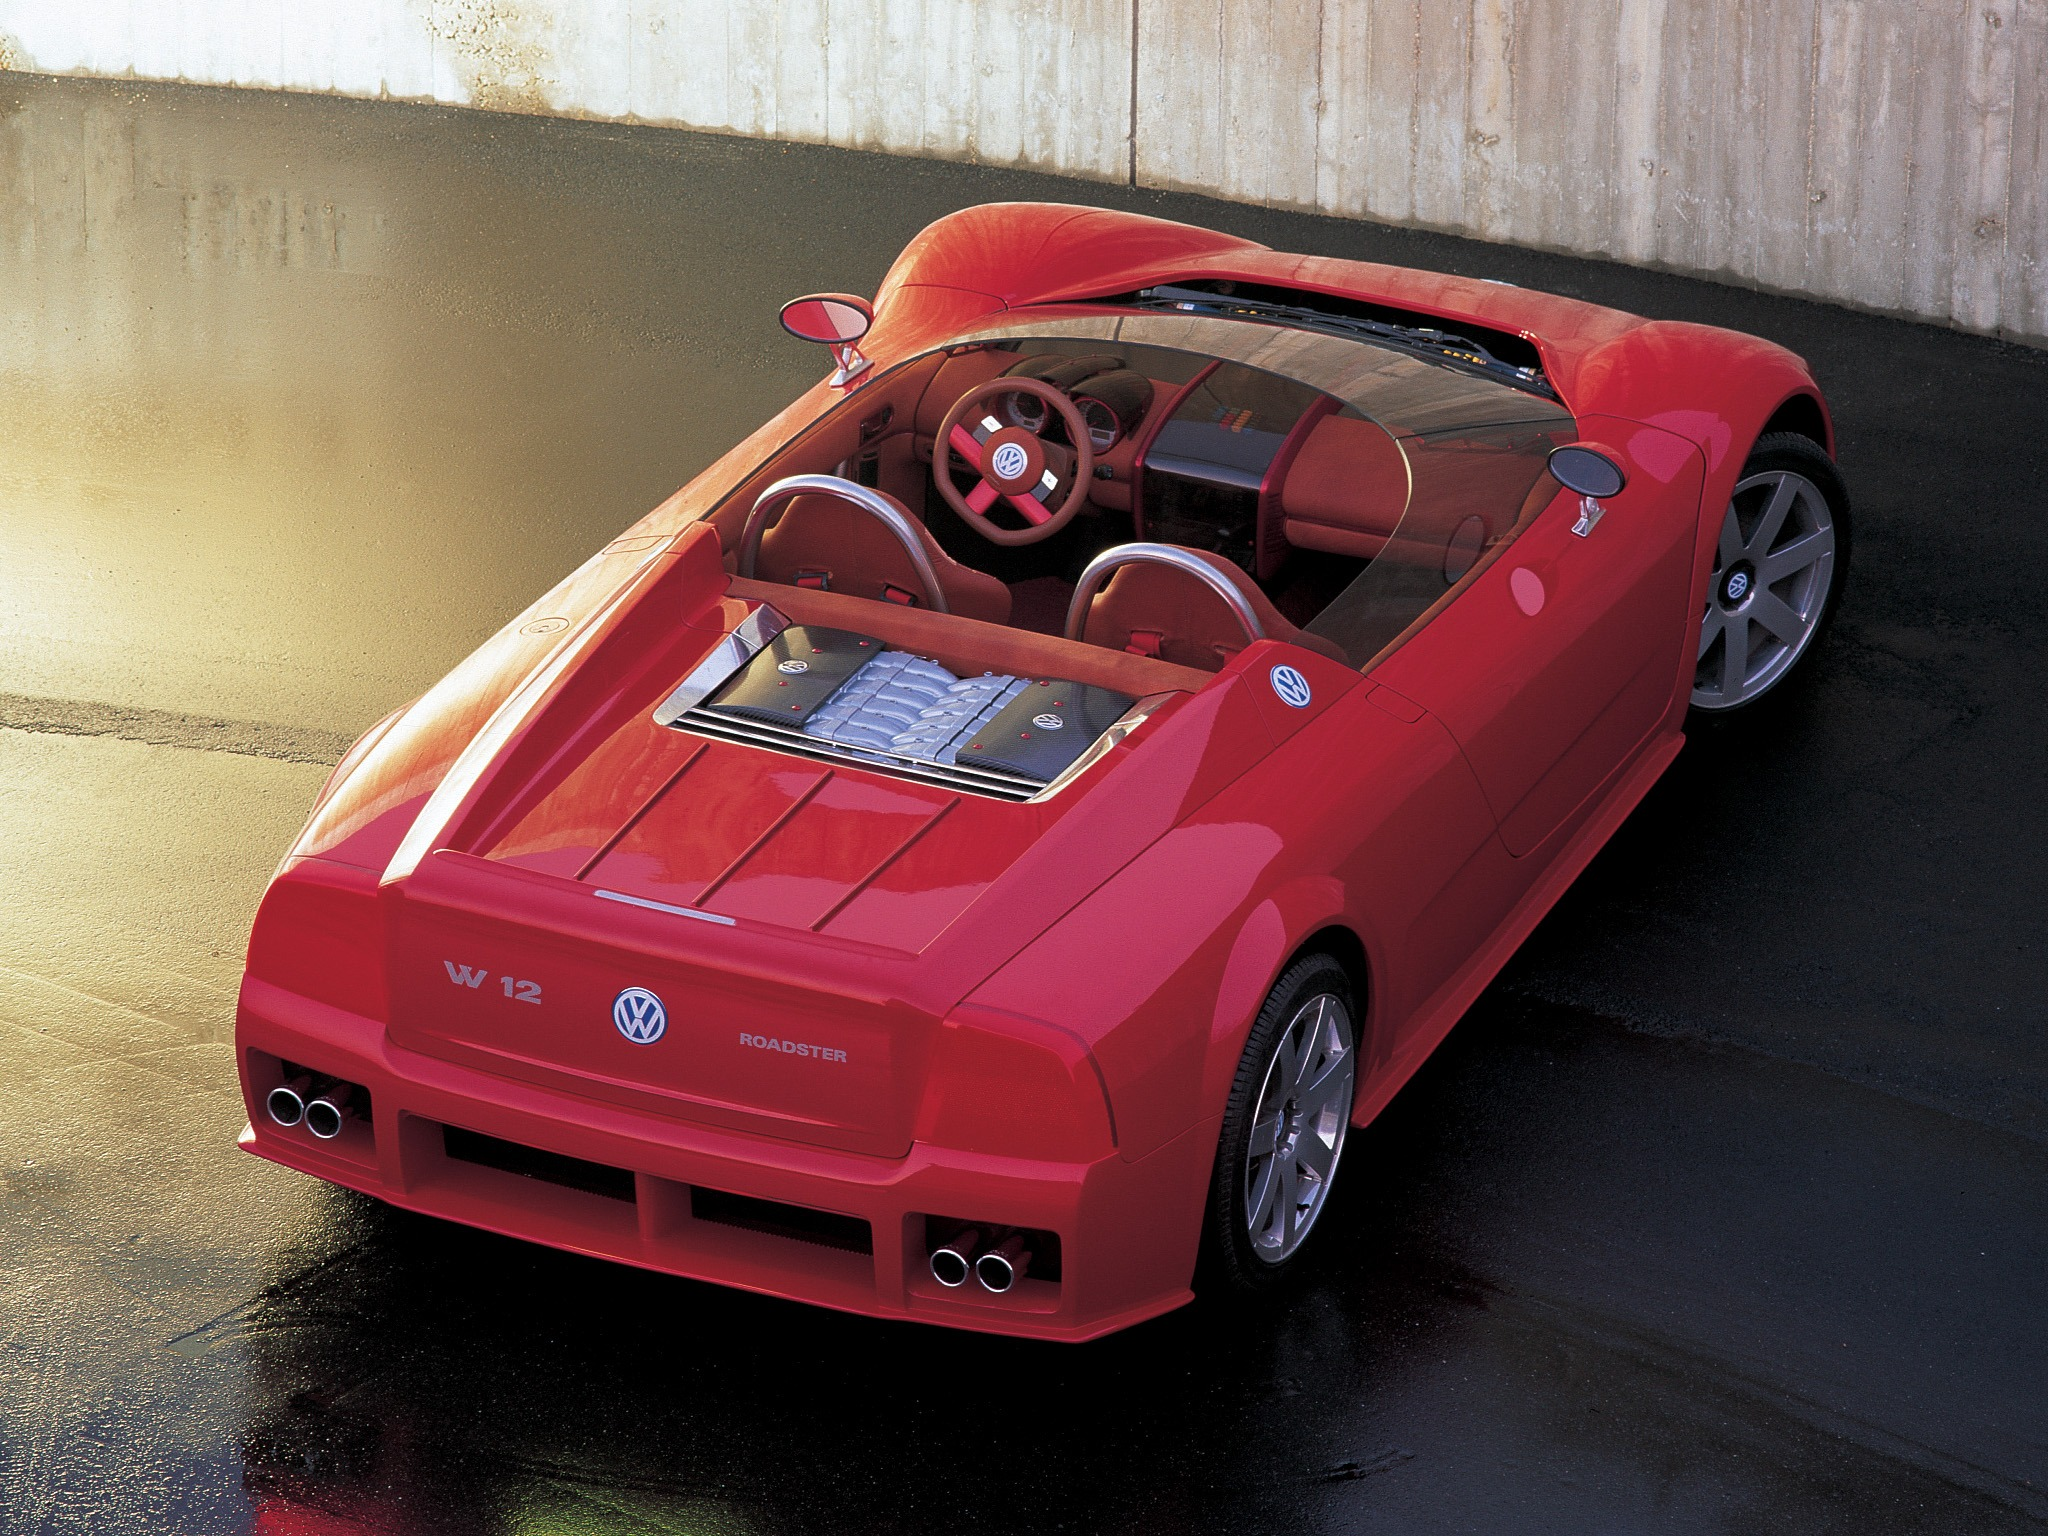 Volkswagen W12 Roadster Concept 1998 Old Concept Cars